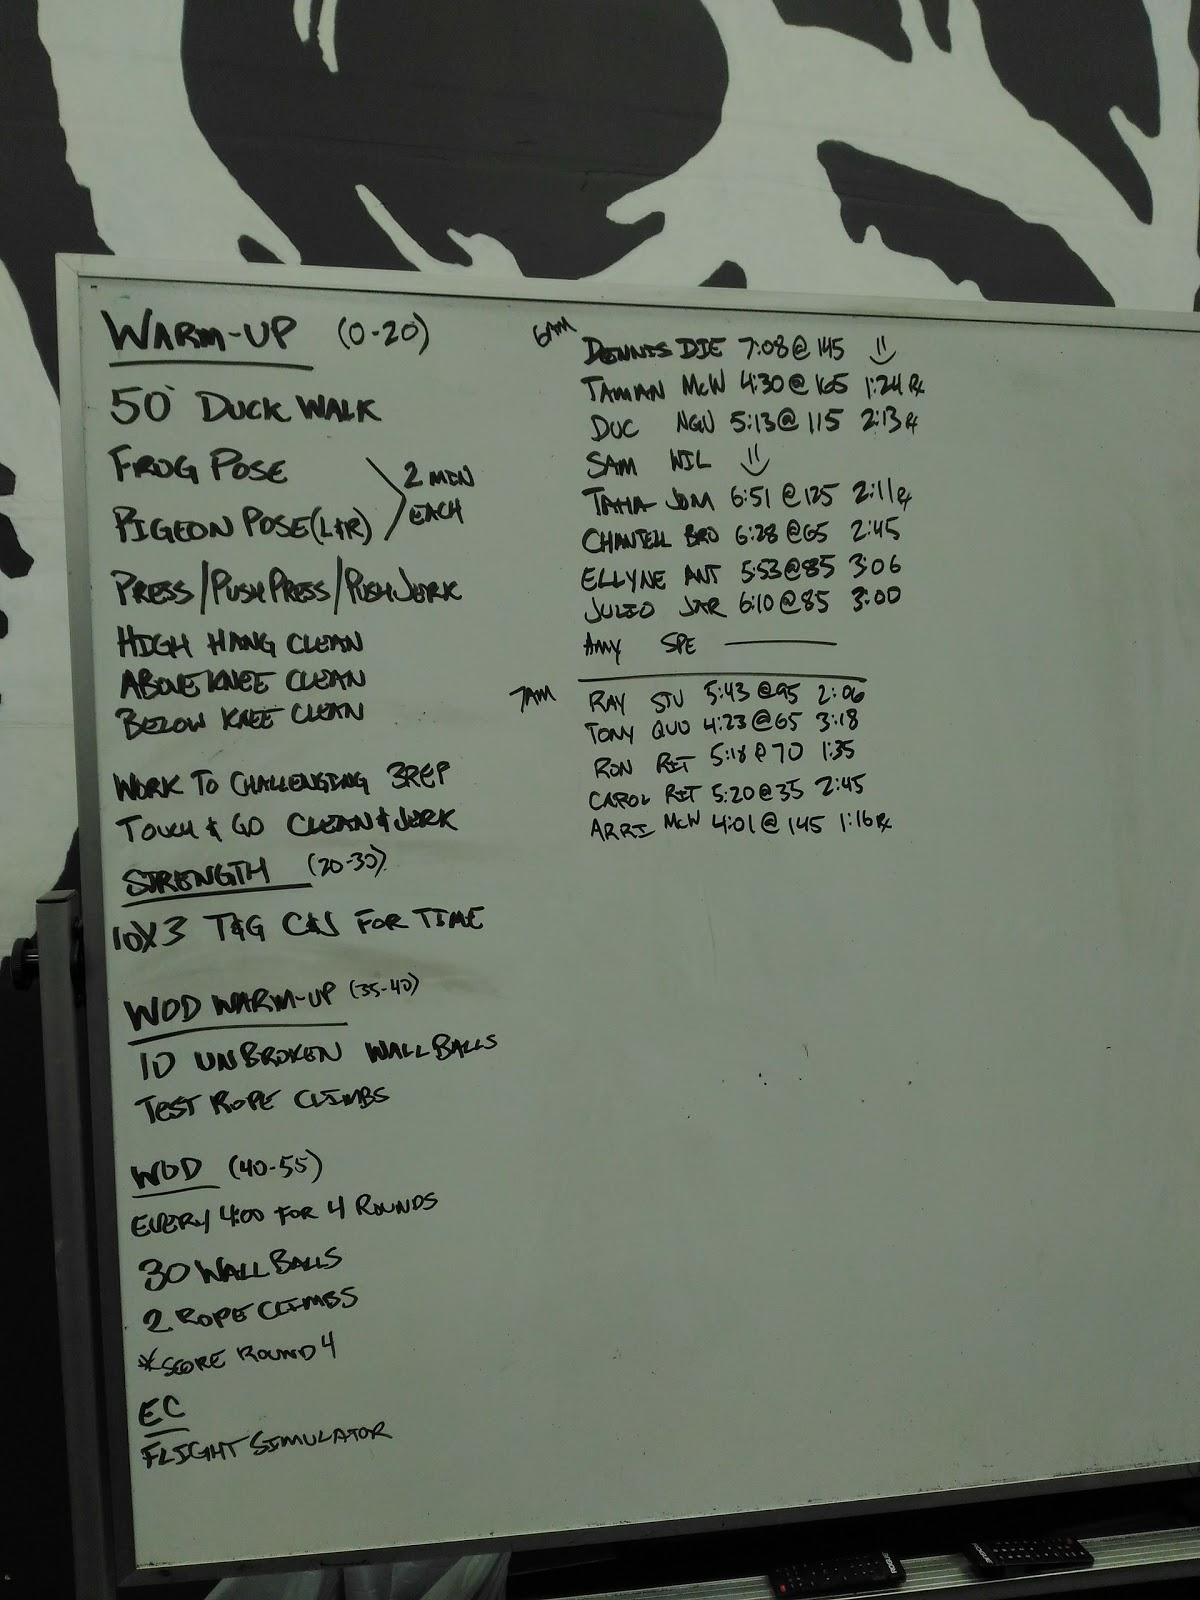 Crossfit Armoury - November 14, 2016: Touch-n-Go C&J